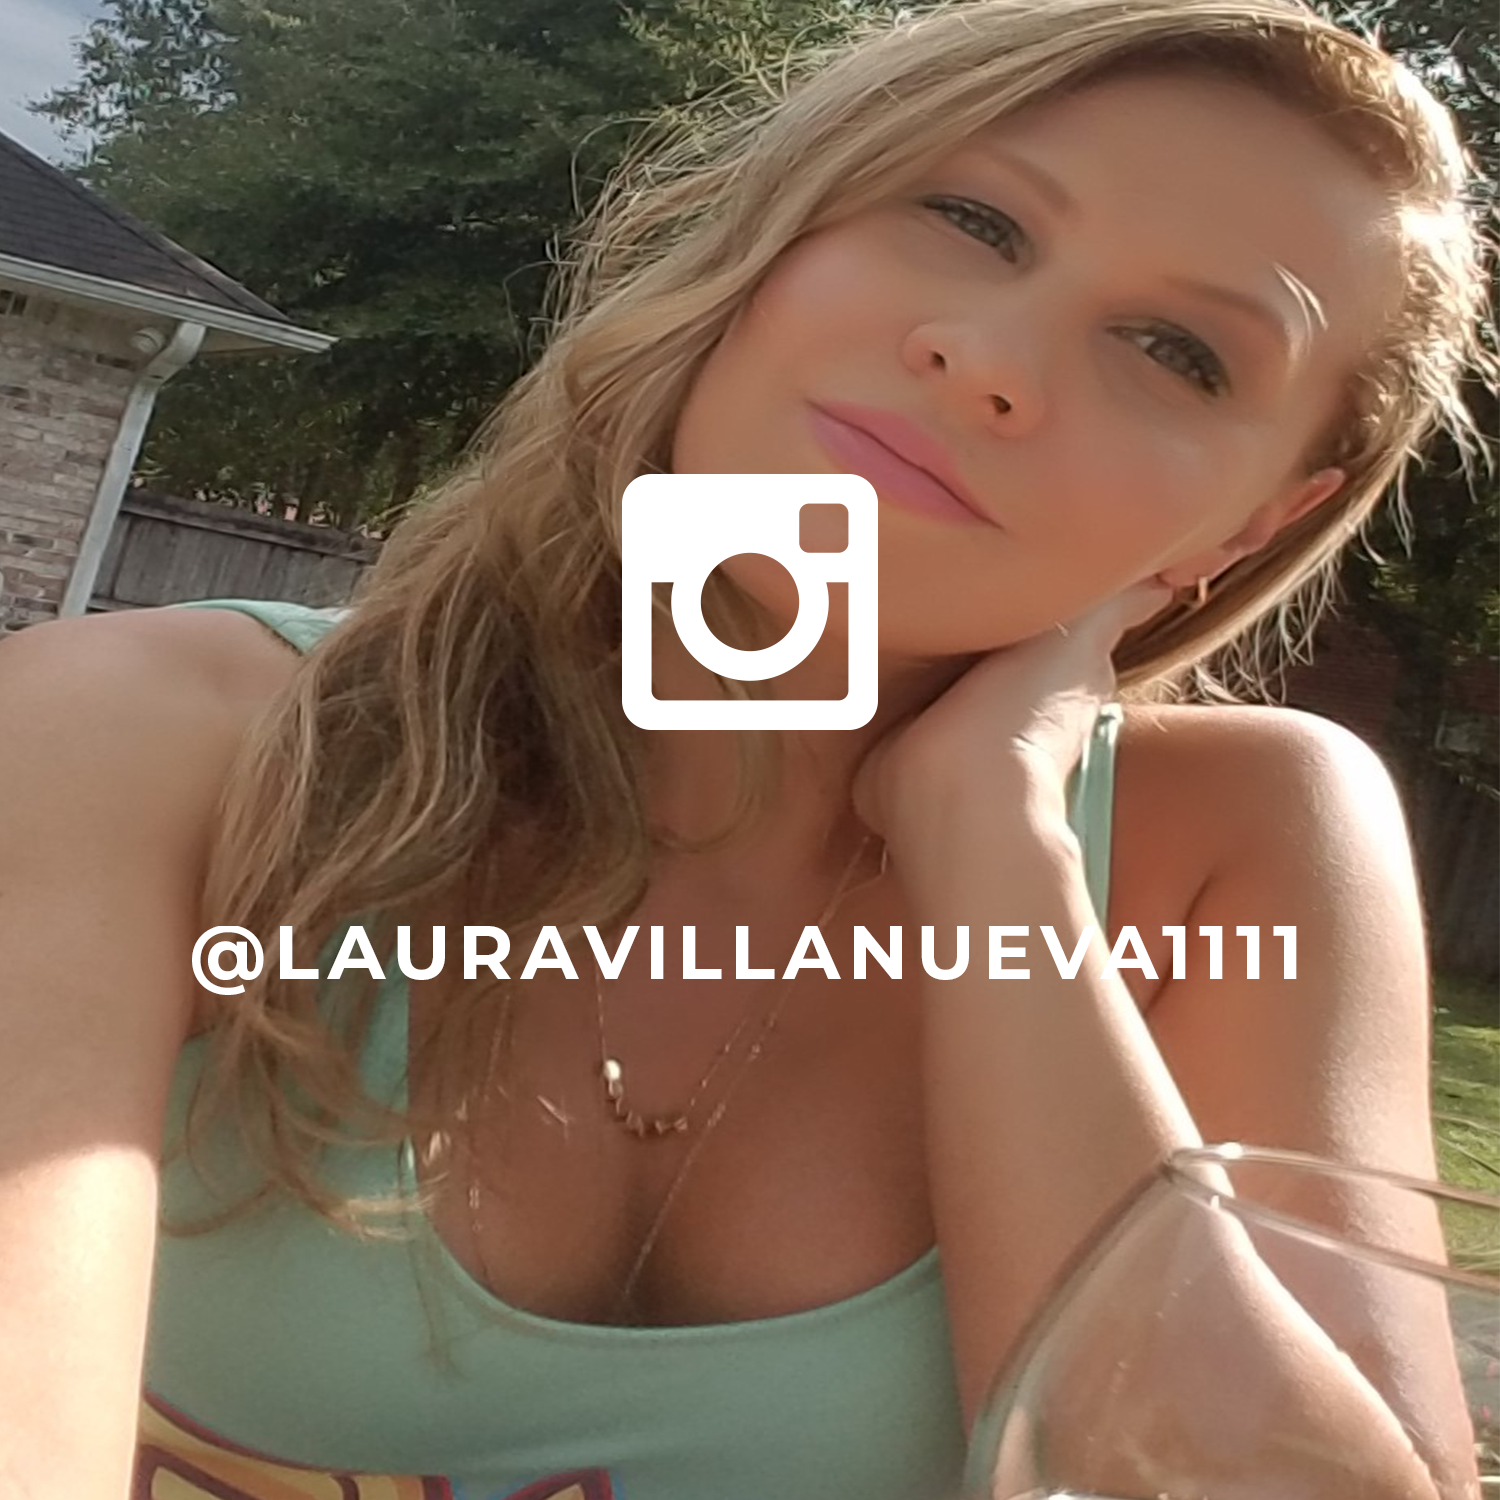 Laura instgramfeature.png